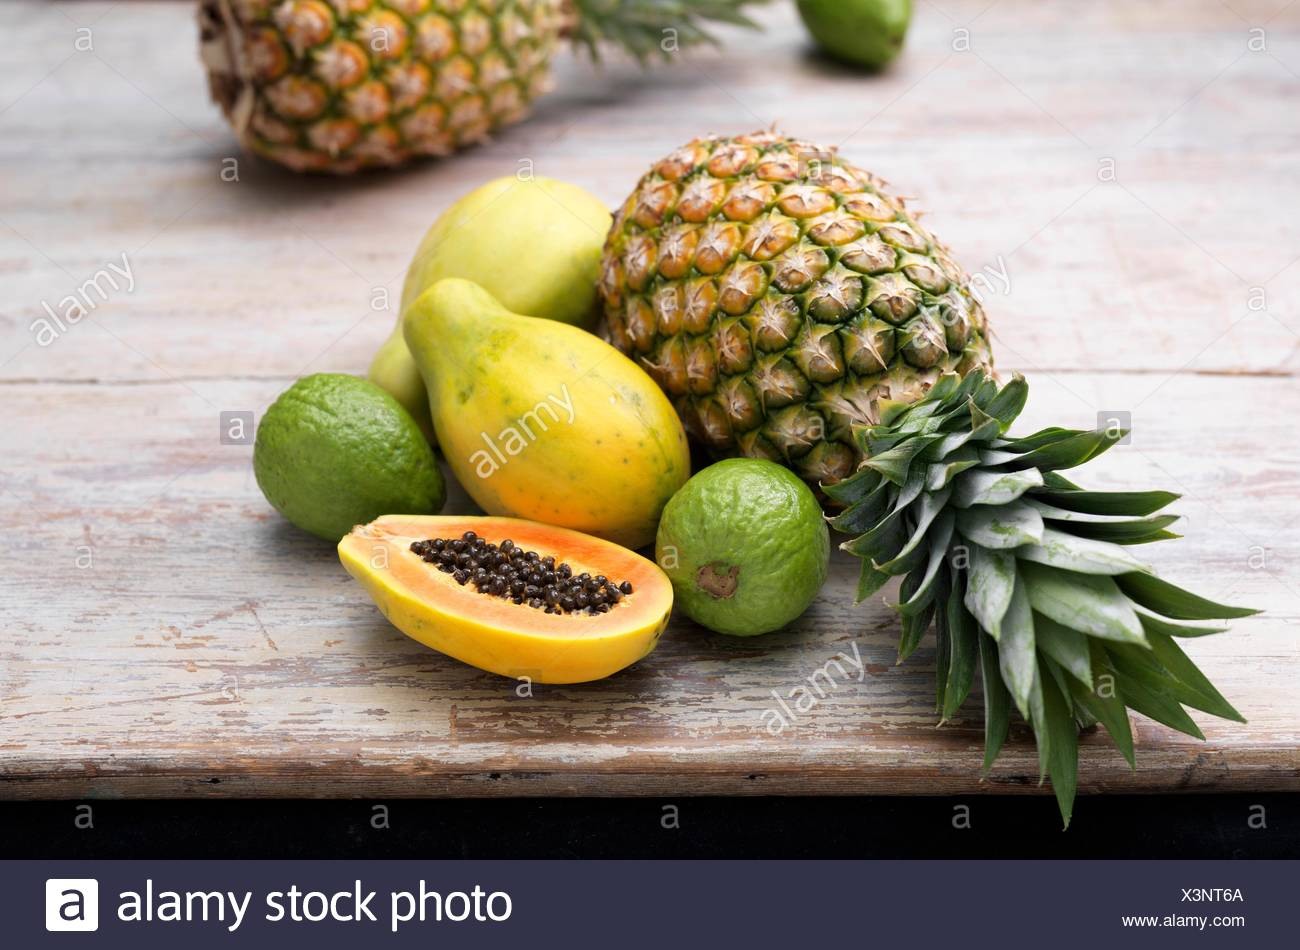 Fruit ingredients for tropical juice on wooden table - Stock Image